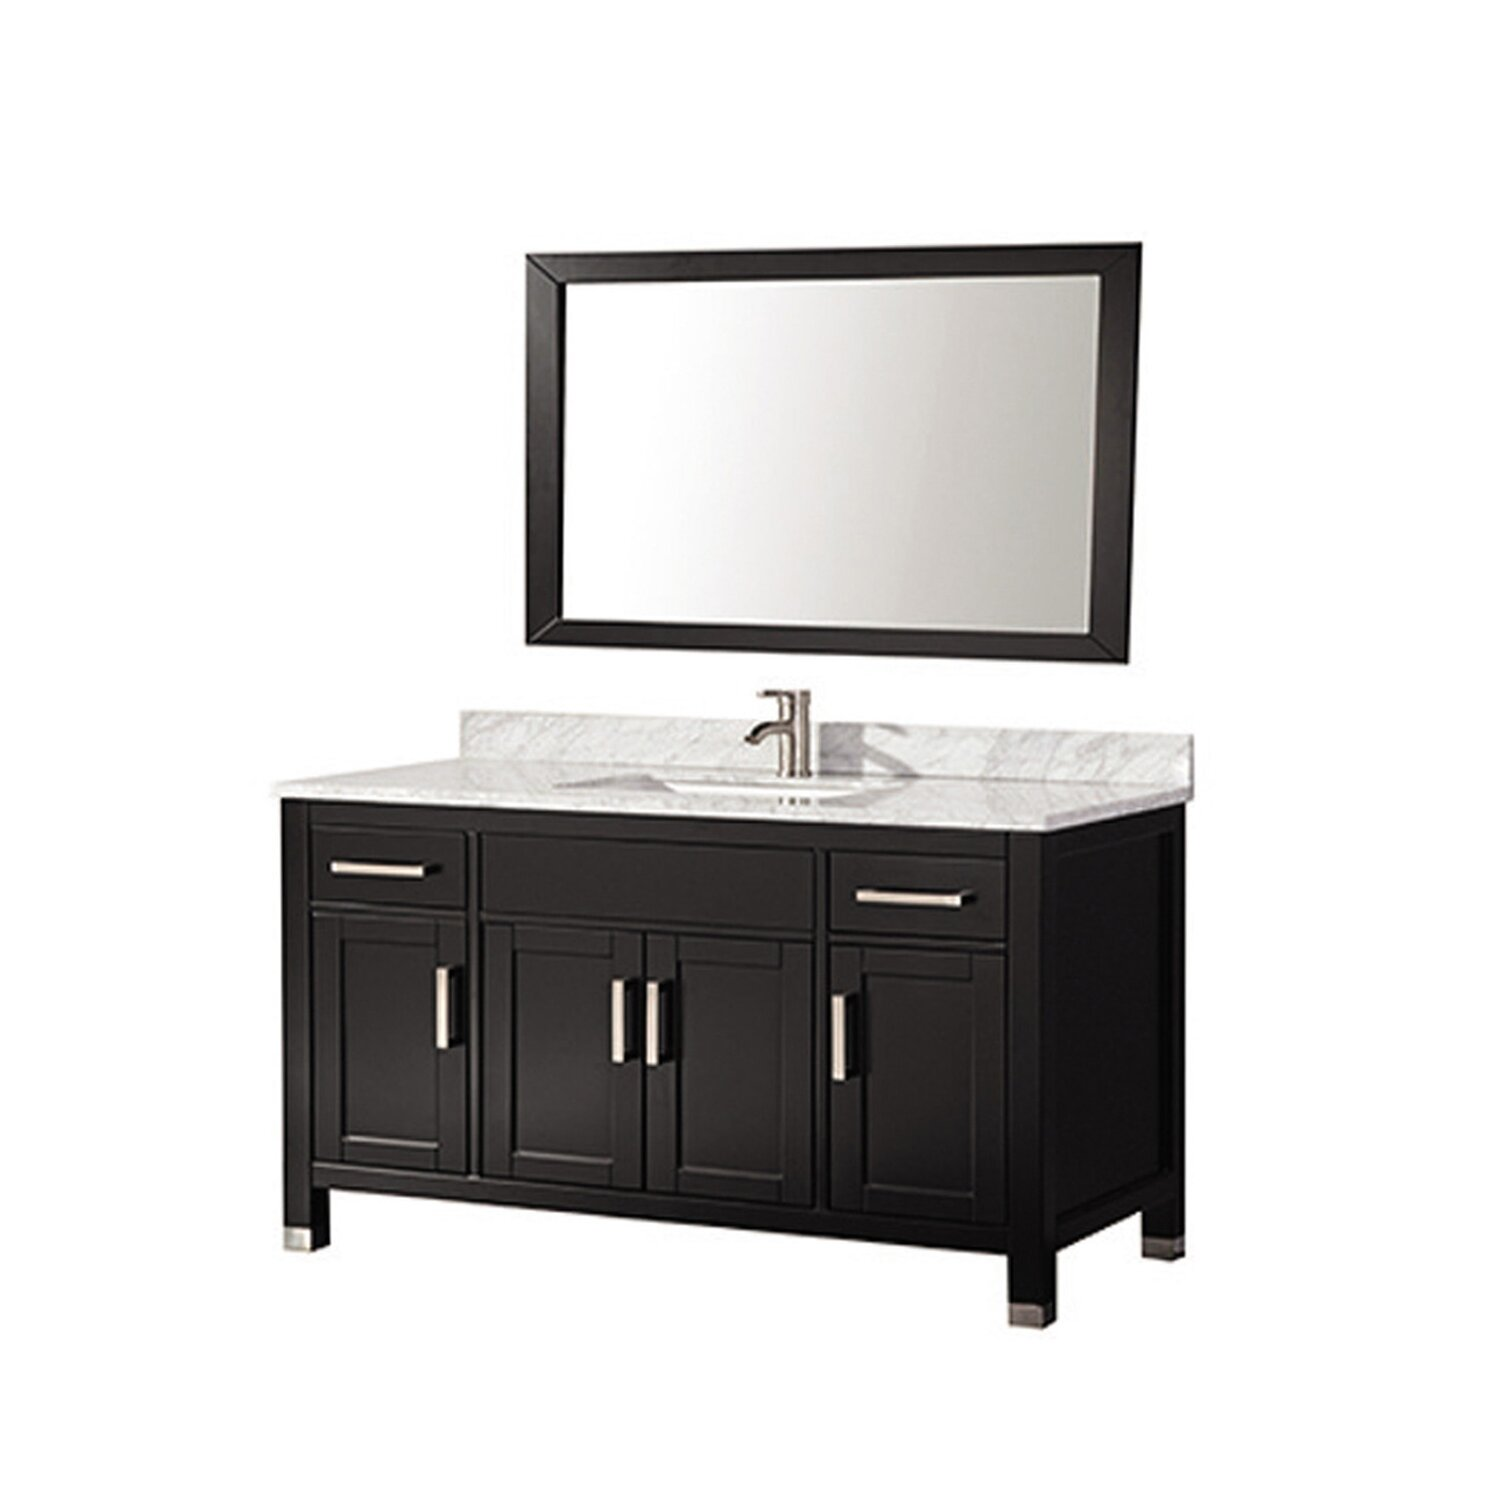 Mtdvanities ricca 60 single sink bathroom vanity set with mirror reviews wayfair 60 in bathroom vanities with single sink